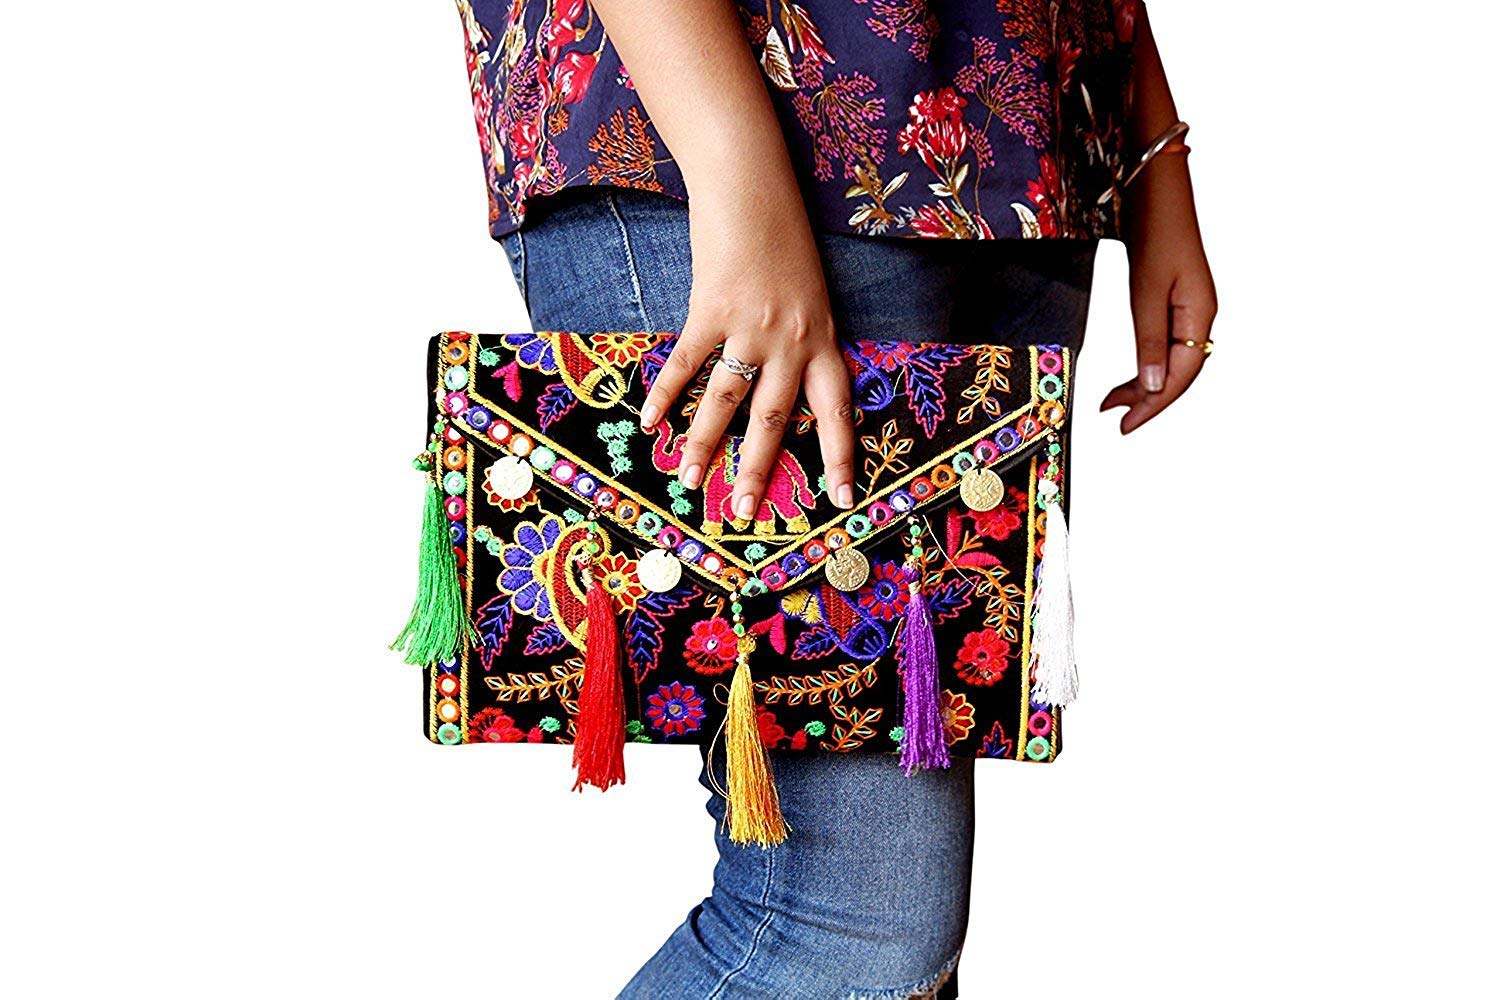 Hippie Handmade Clutch Purse for women Cotton Elephant Embroidery coin work Ethnic Vintage bohemian Tribal Banjara Black Sling Bags